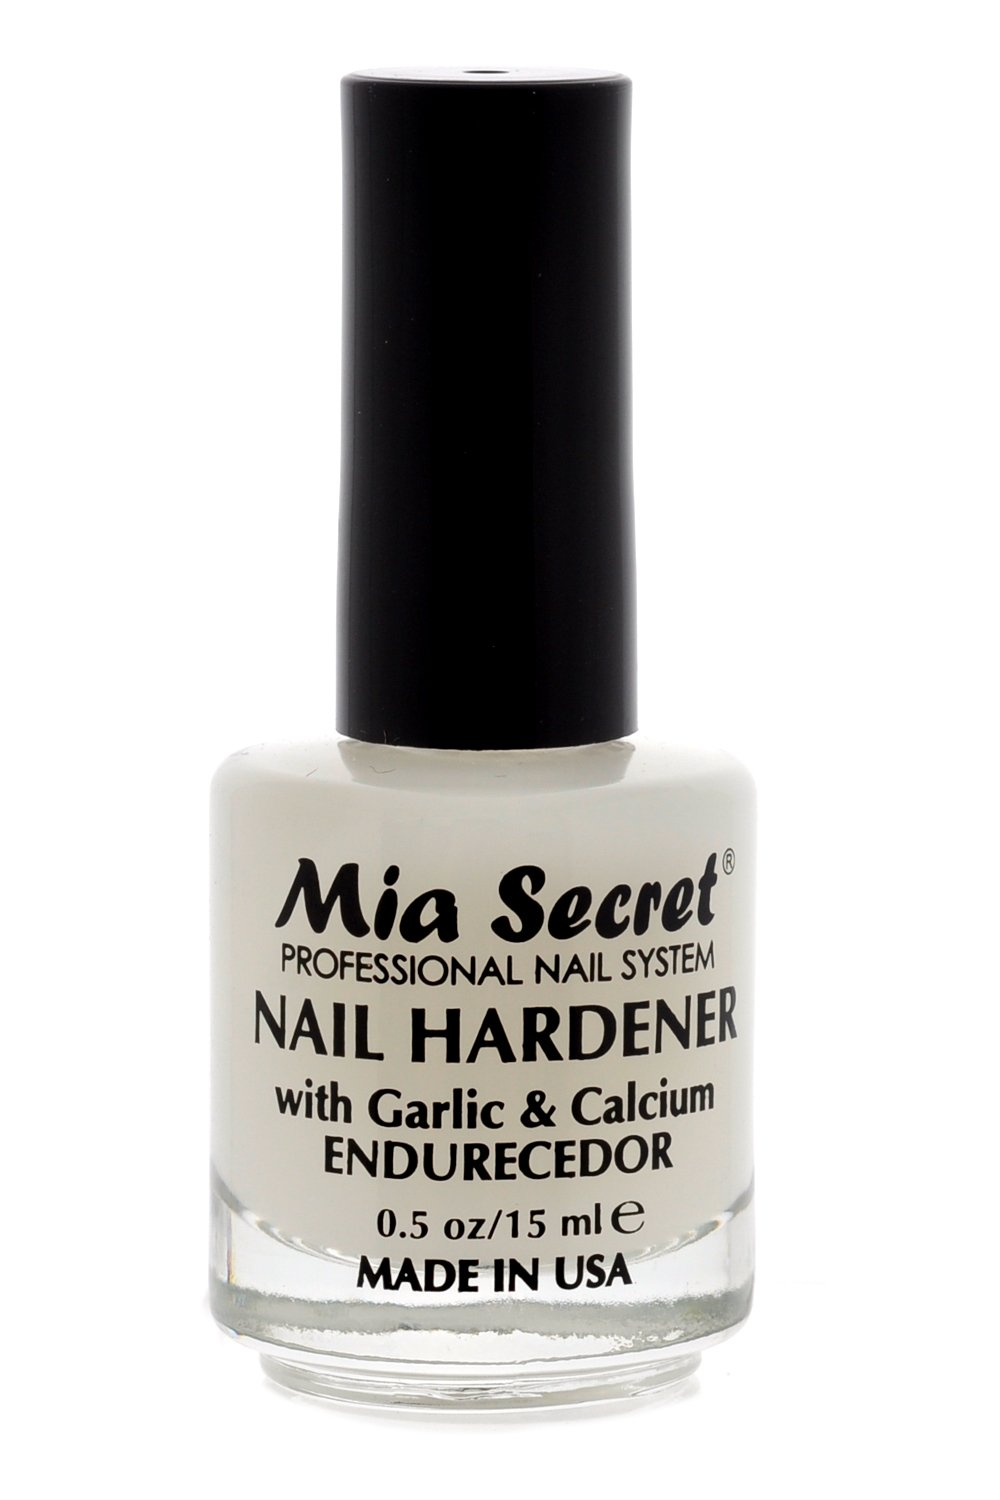 Amazon.com: Mia Secret Nail Hardener with Garlic & Calcium 0.5 OZ ...